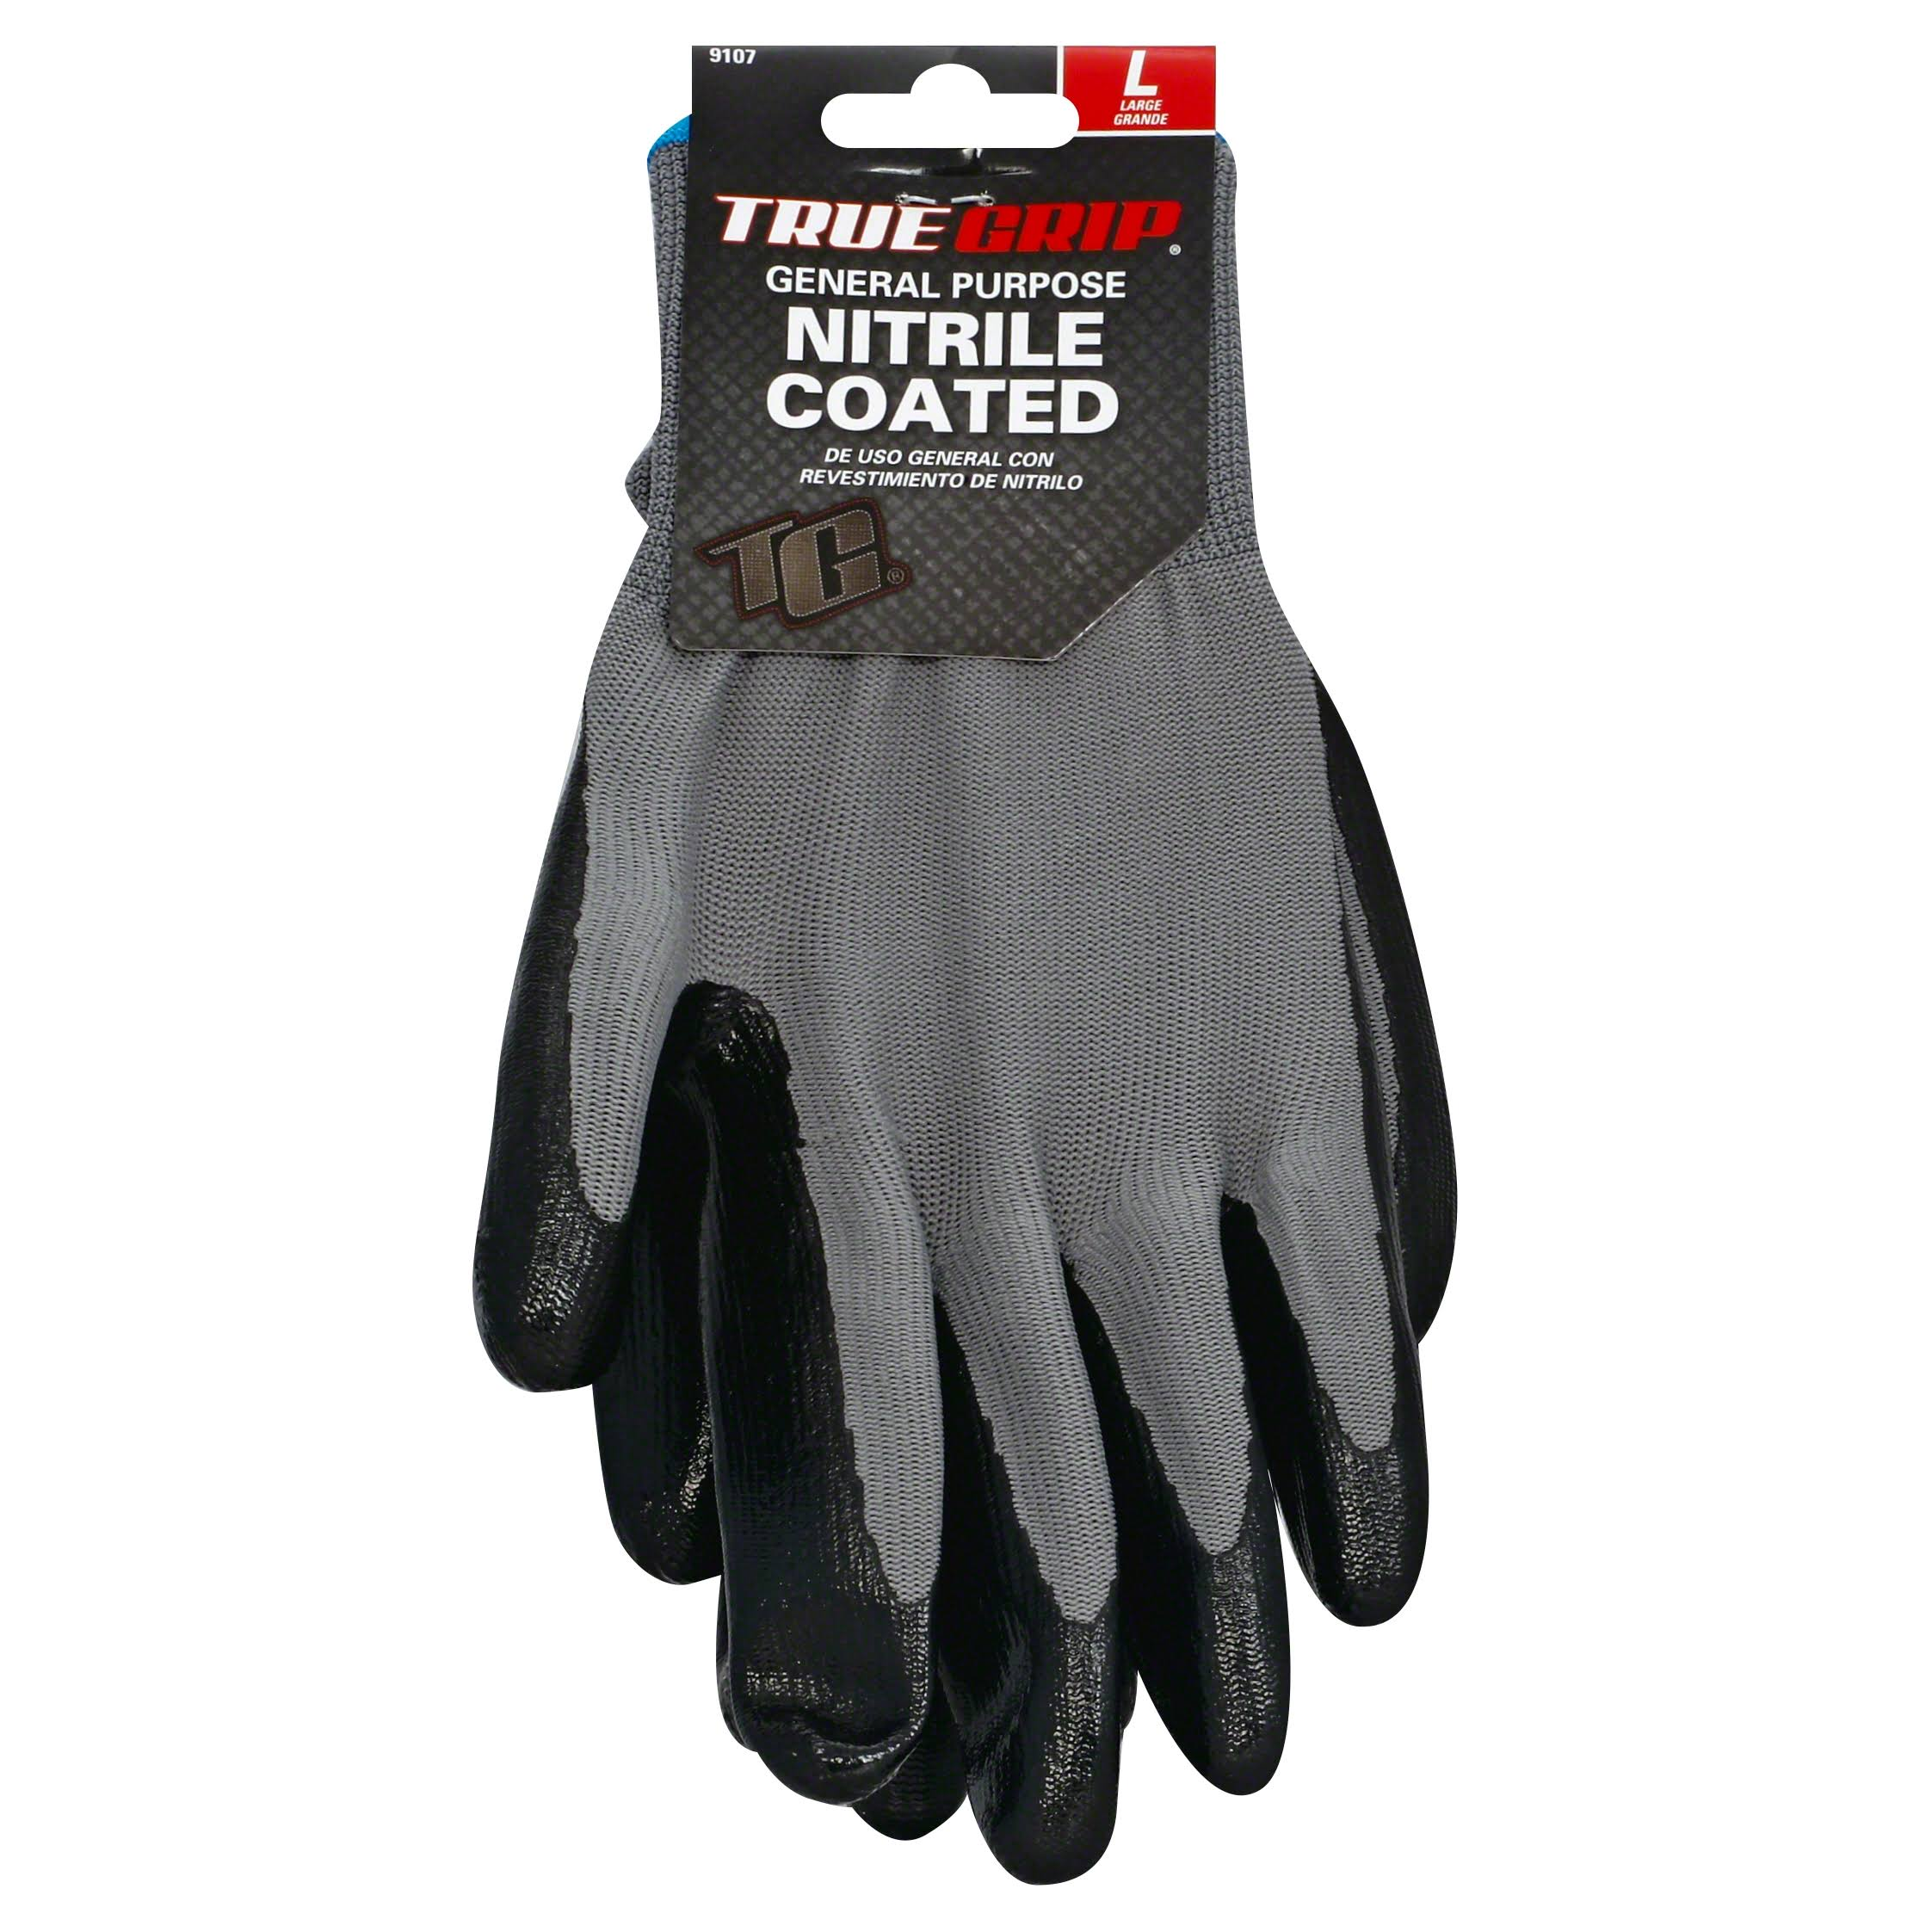 True Grip General Purpose Gloves - Nitrile Coated, Large